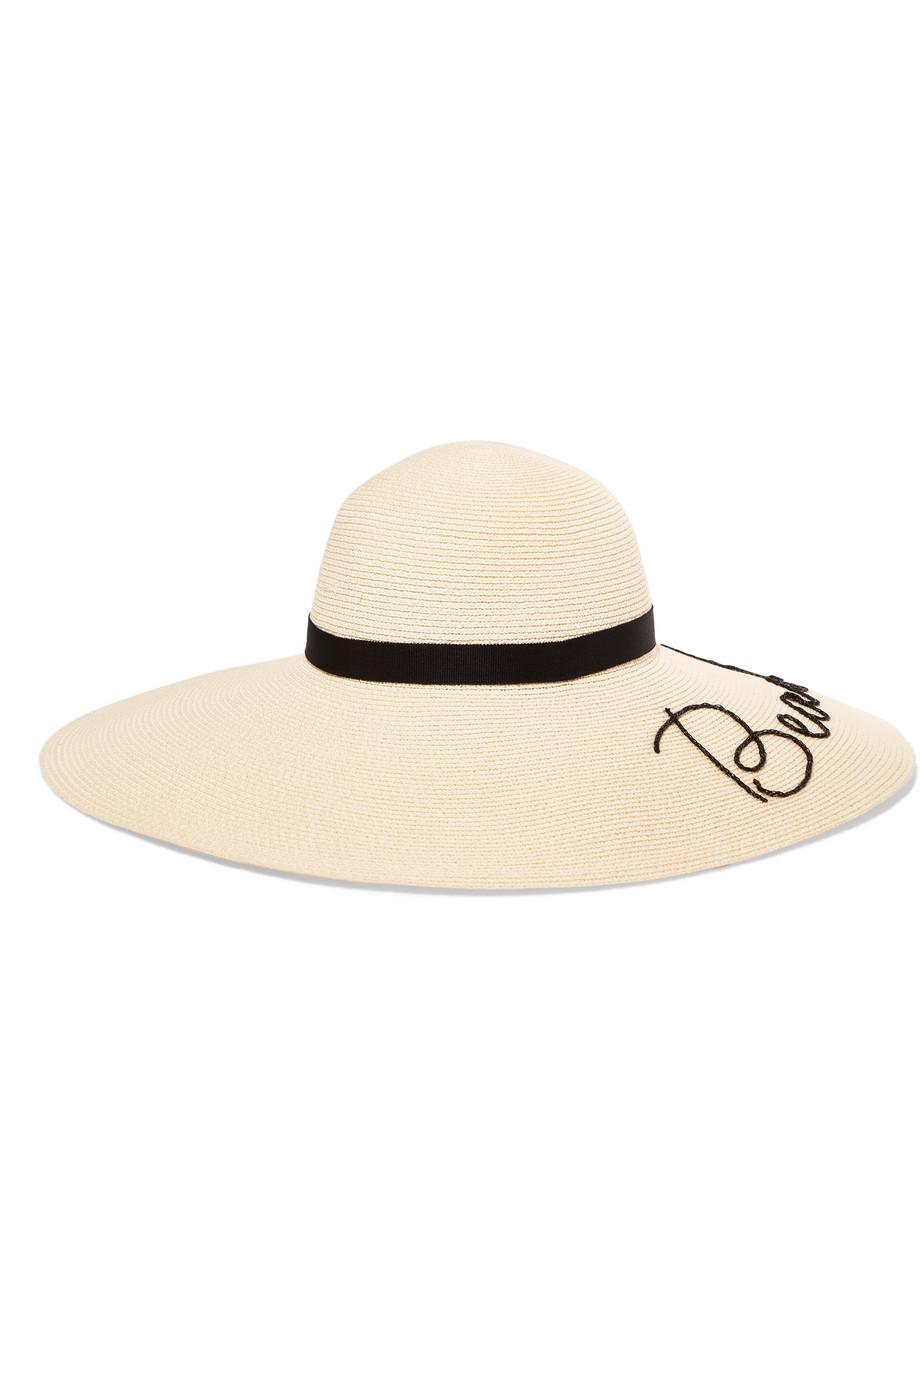 2a8ed3d7852b5 Lyst - Eugenia Kim Bunny Embroidered Woven Paper Sunhat in White